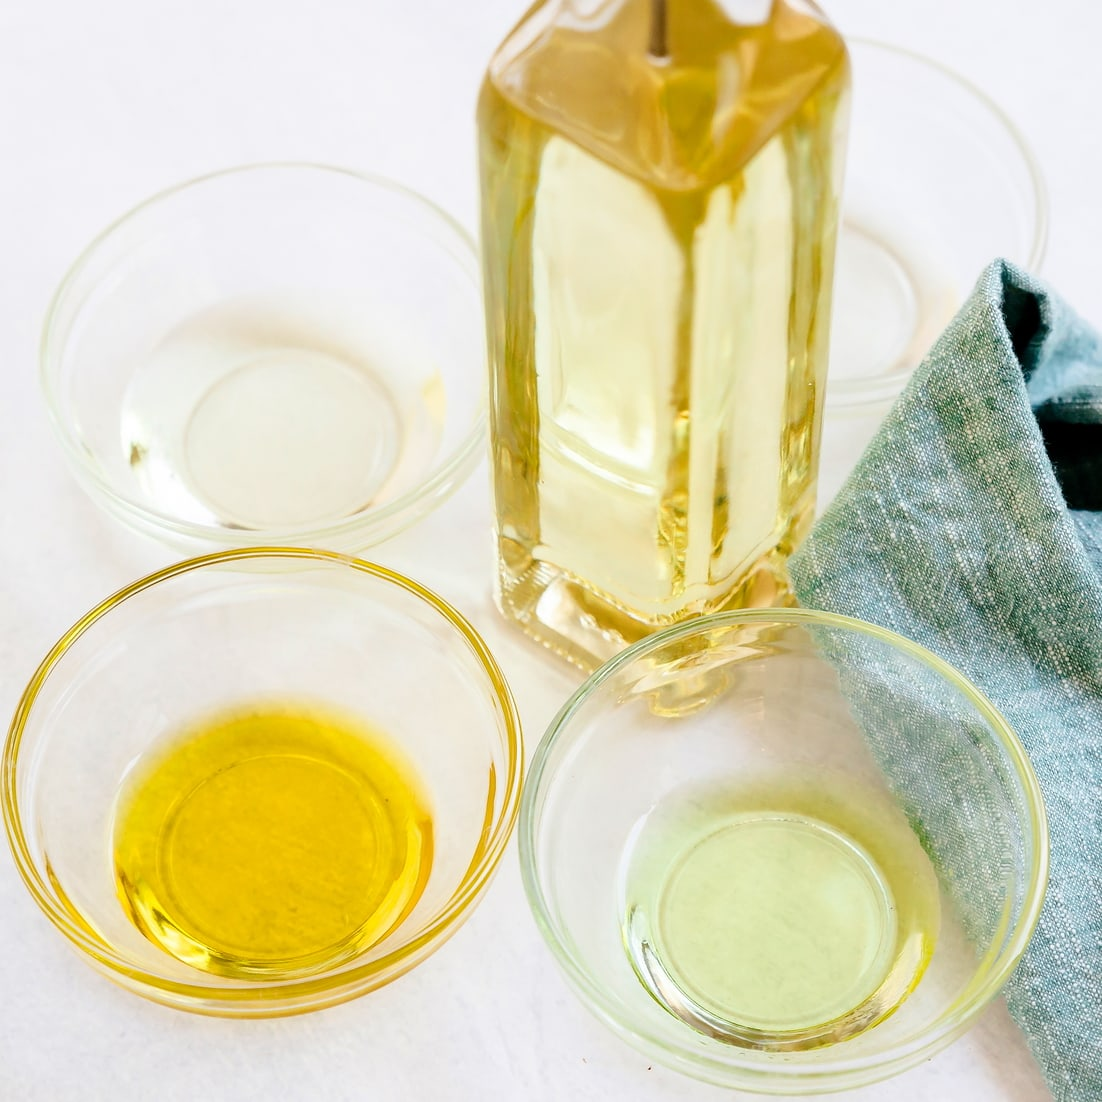 Sunflower oil, olive oil, canola oil and grapeseed oil poured into different bowls